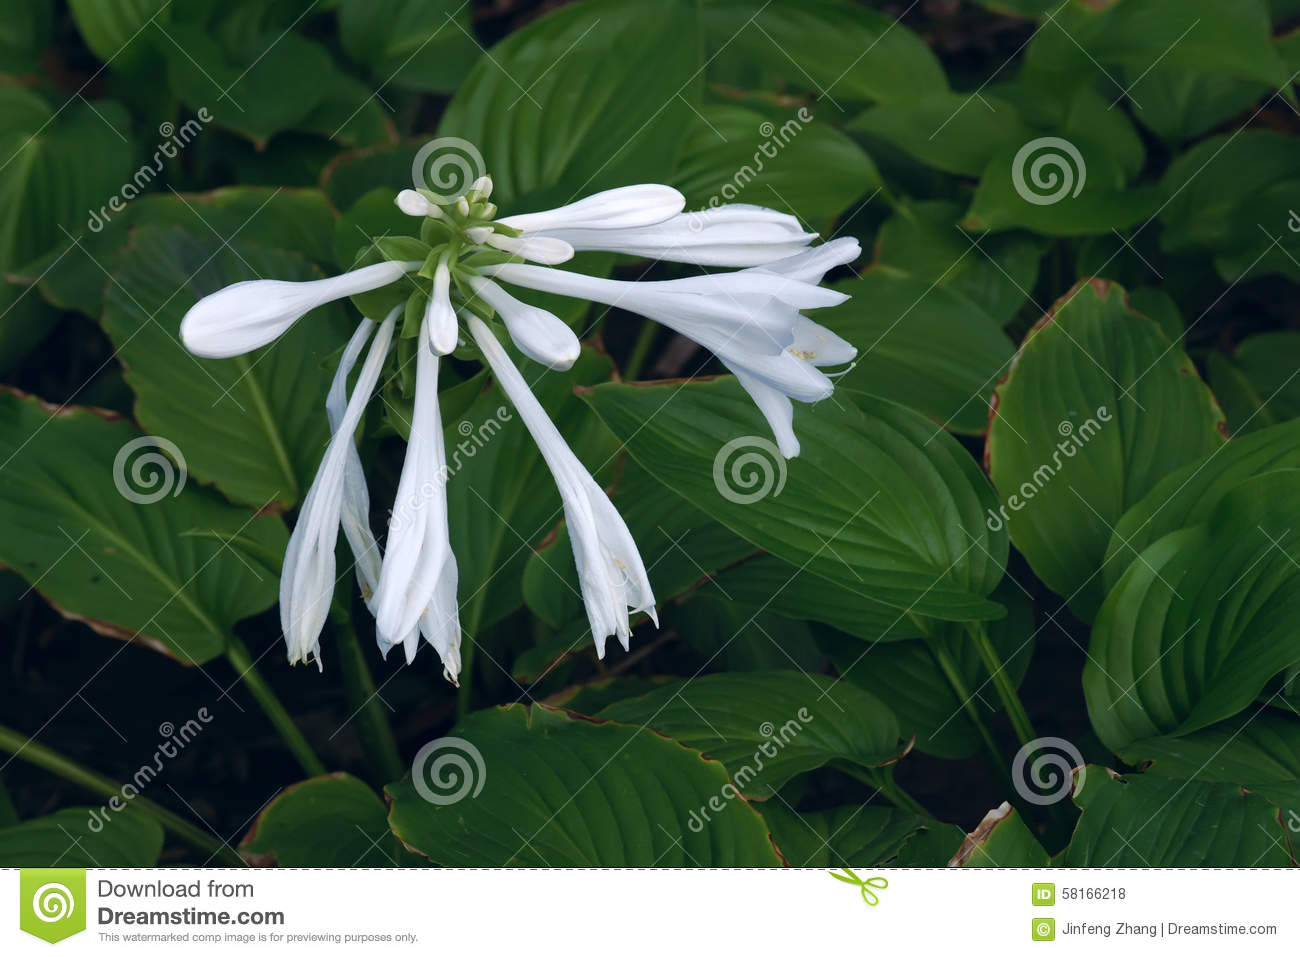 Fragrant plantain lily stock photo image of anthotaxy 58166218 fragrant plantain lily izmirmasajfo